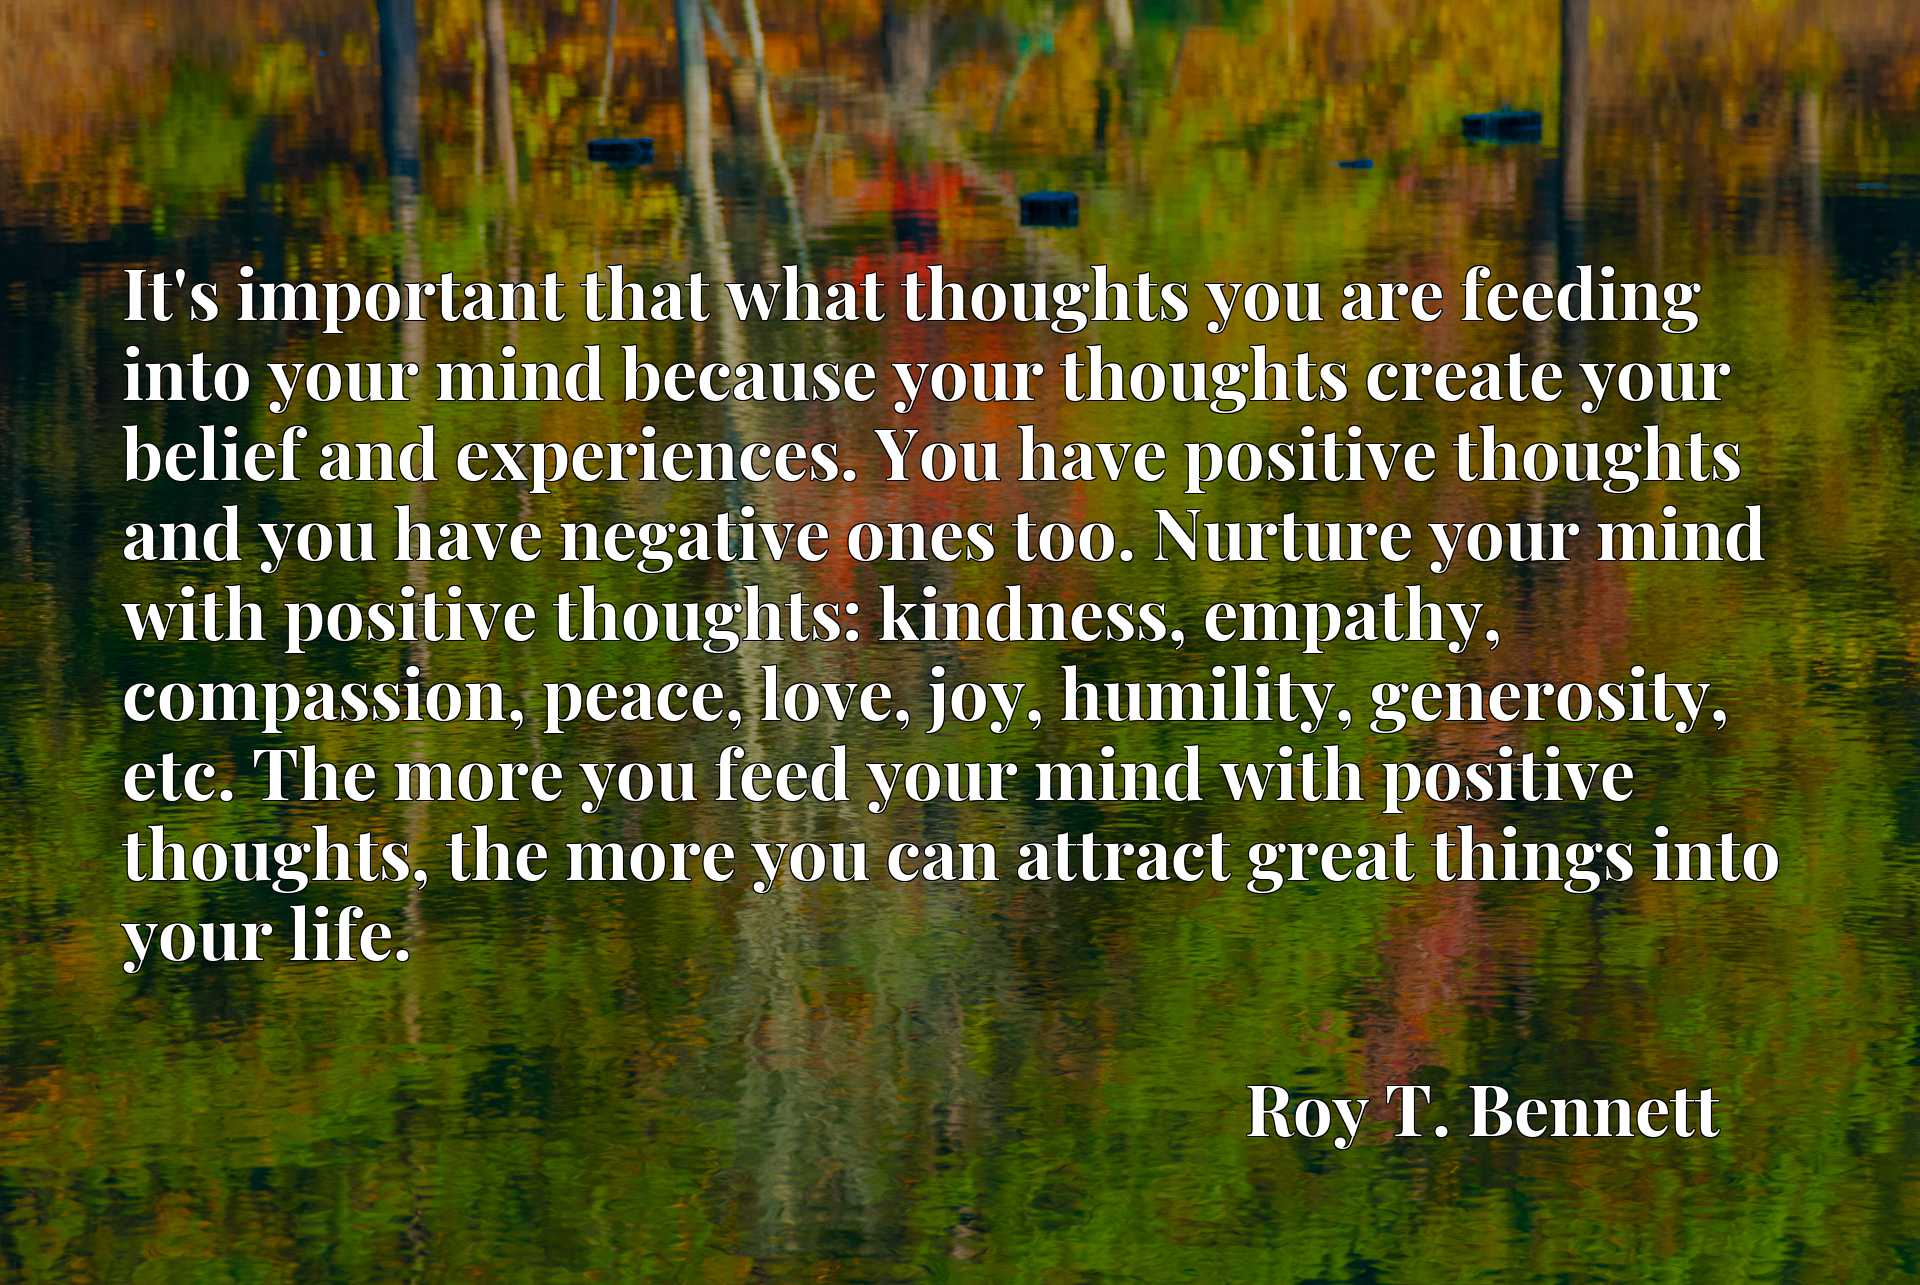 It's important that what thoughts you are feeding into your mind because your thoughts create your belief and experiences. You have positive thoughts and you have negative ones too. Nurture your mind with positive thoughts: kindness, empathy, compassion, peace, love, joy, humility, generosity, etc. The more you feed your mind with positive thoughts, the more you can attract great things into your life.